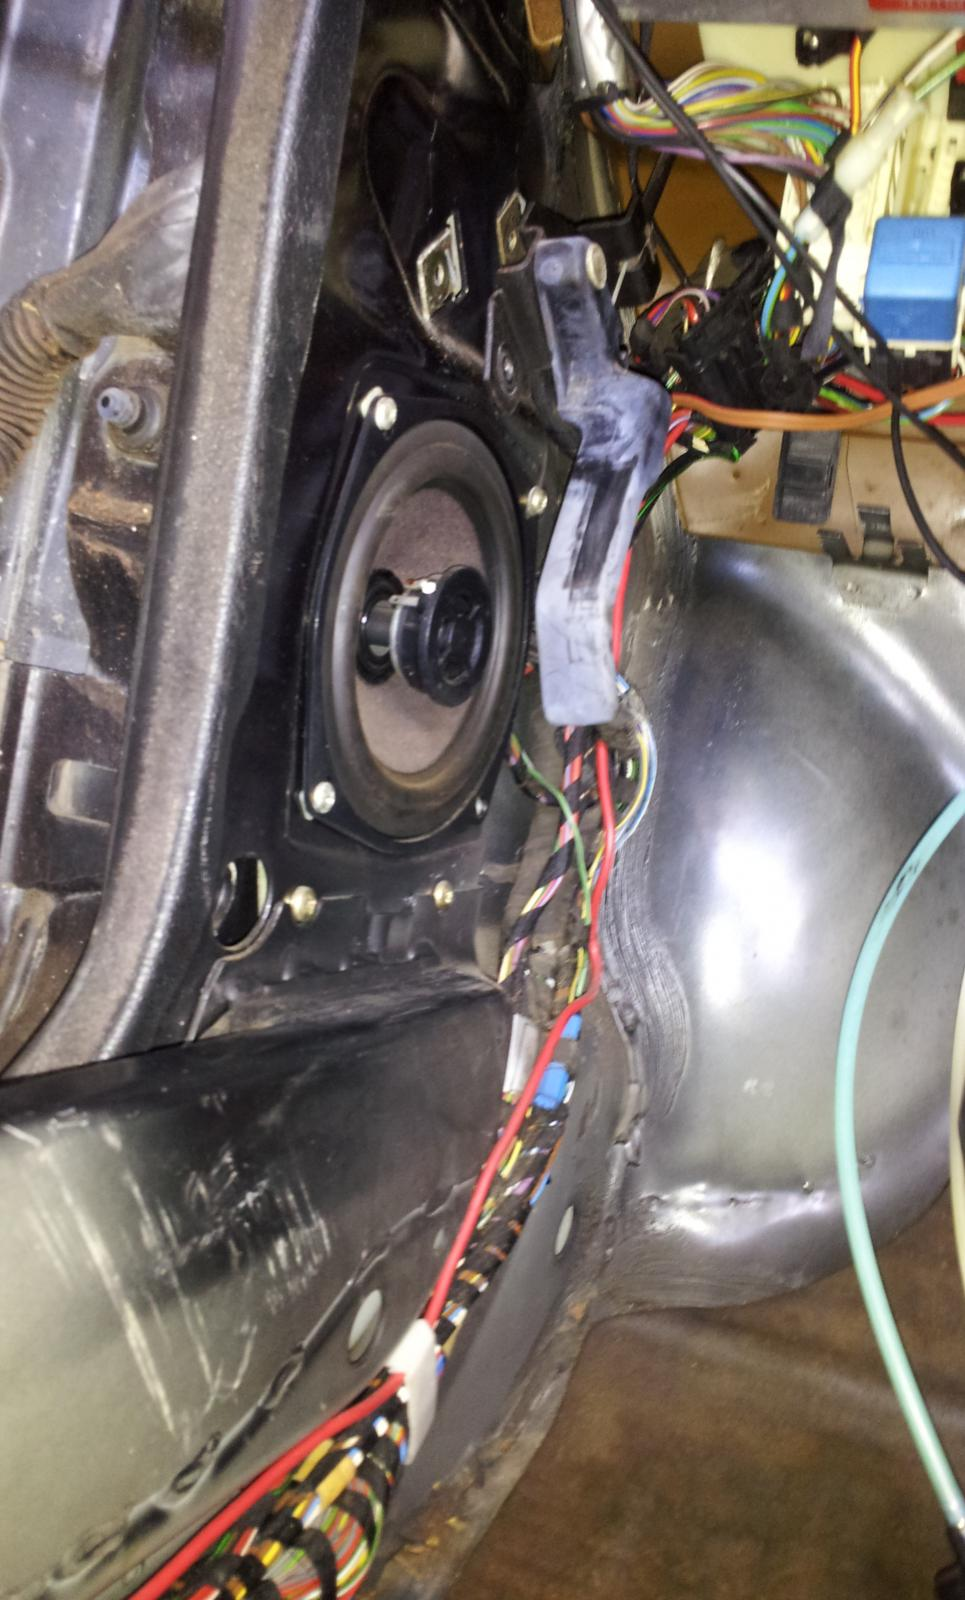 How To Install Heated Seat Wiring Kit From A E30 R3vlimited Forums Harness Cover Back Towards Driver And Over In Front Of Rails